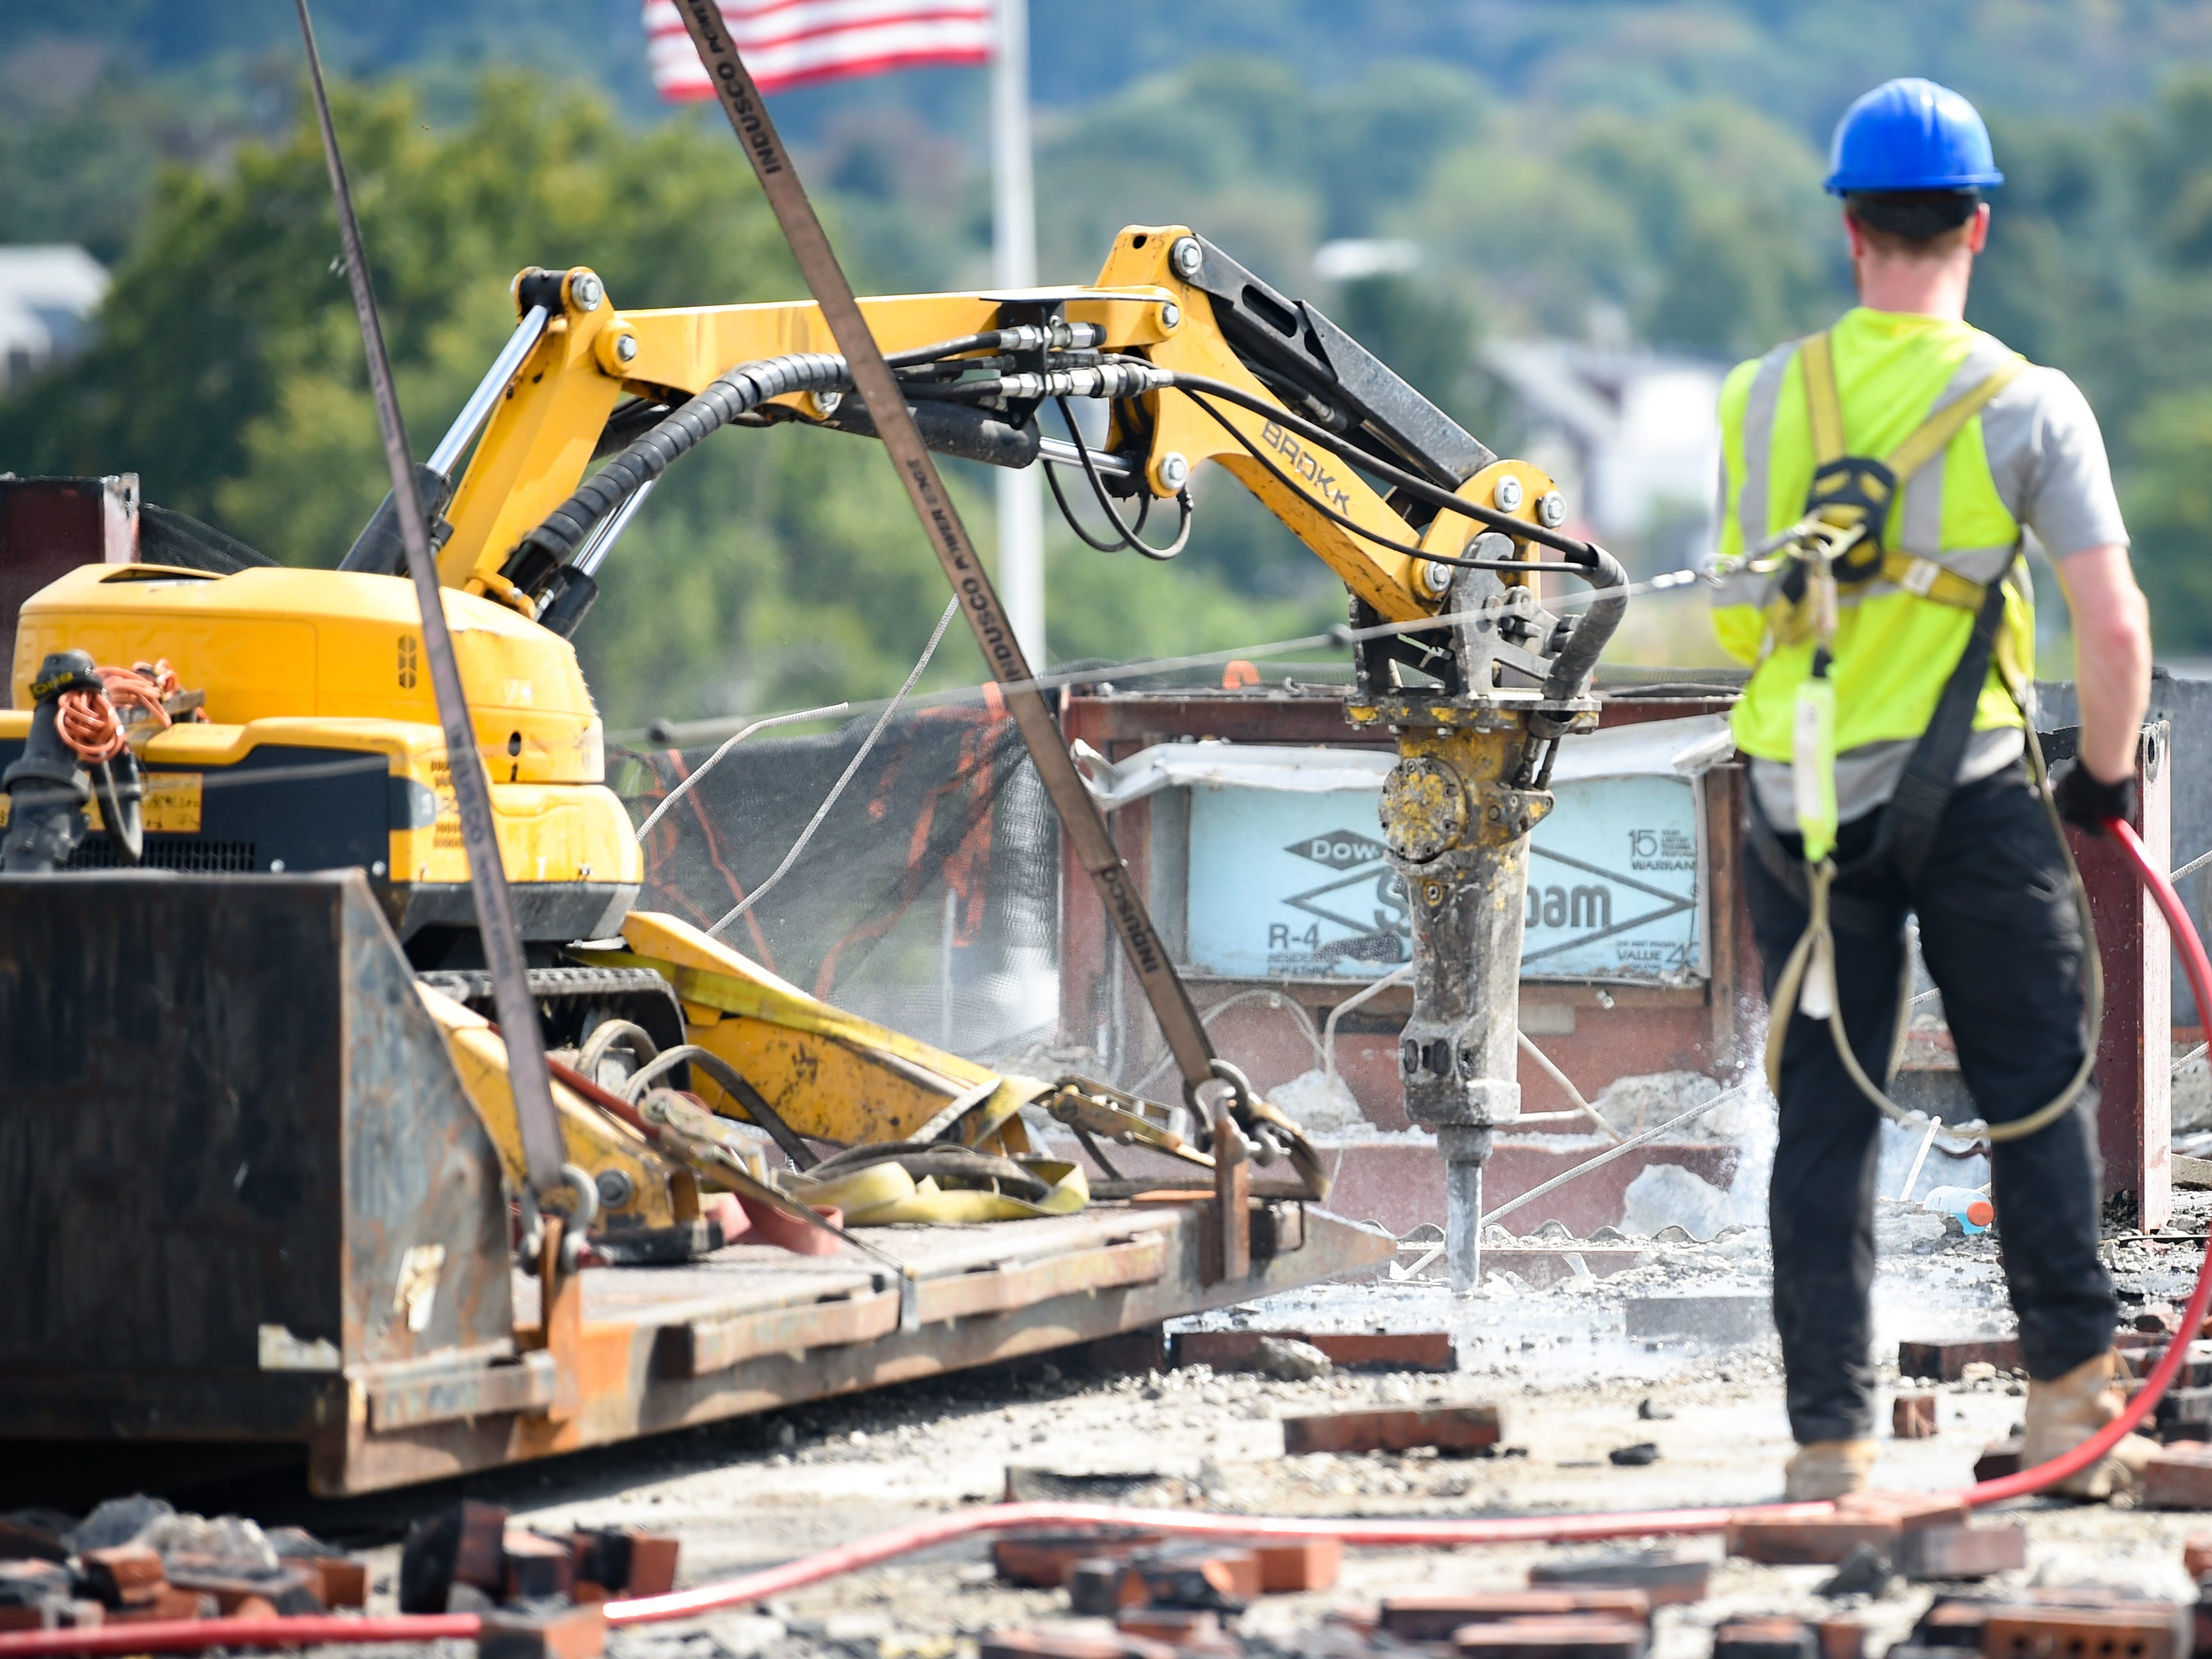 The Brokk 110, a demolition robot, is used to tear apart the eighth floor because it's too high for the trackhoe to reach at the Yorktowne Hotel on October 4, 2018.